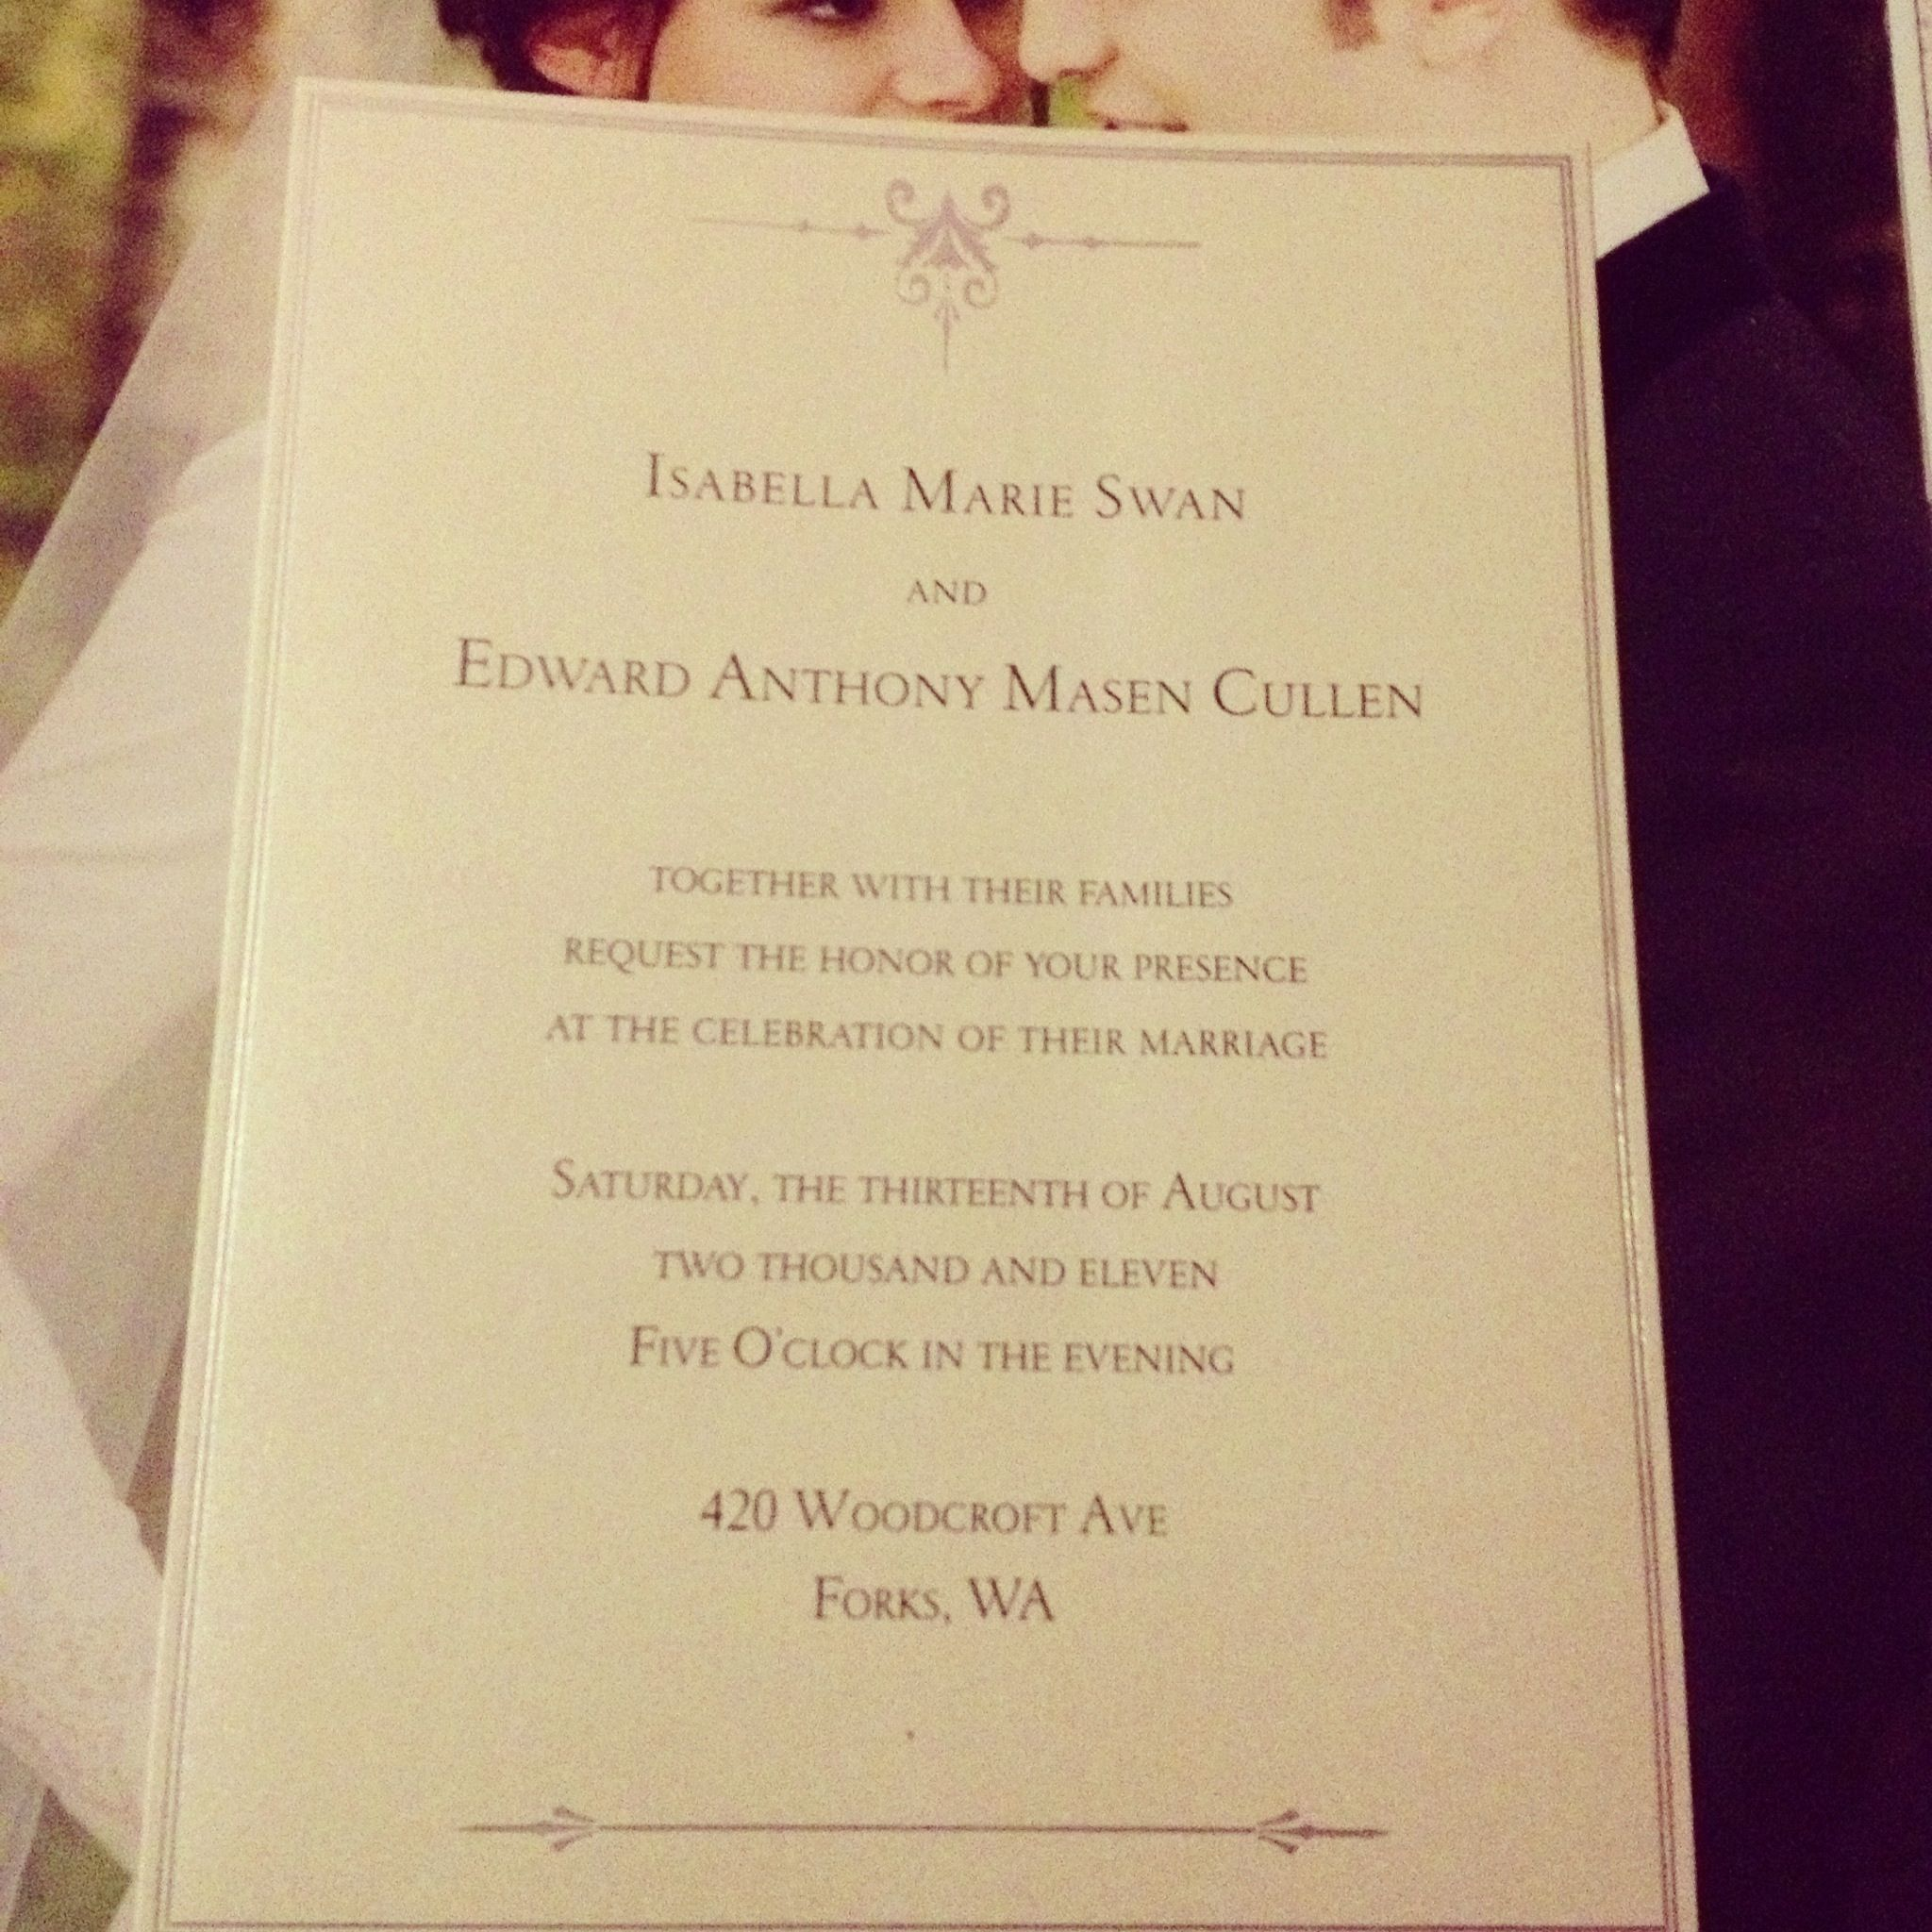 Wedding invitation from The Twilight Saga: The Complete Film ...